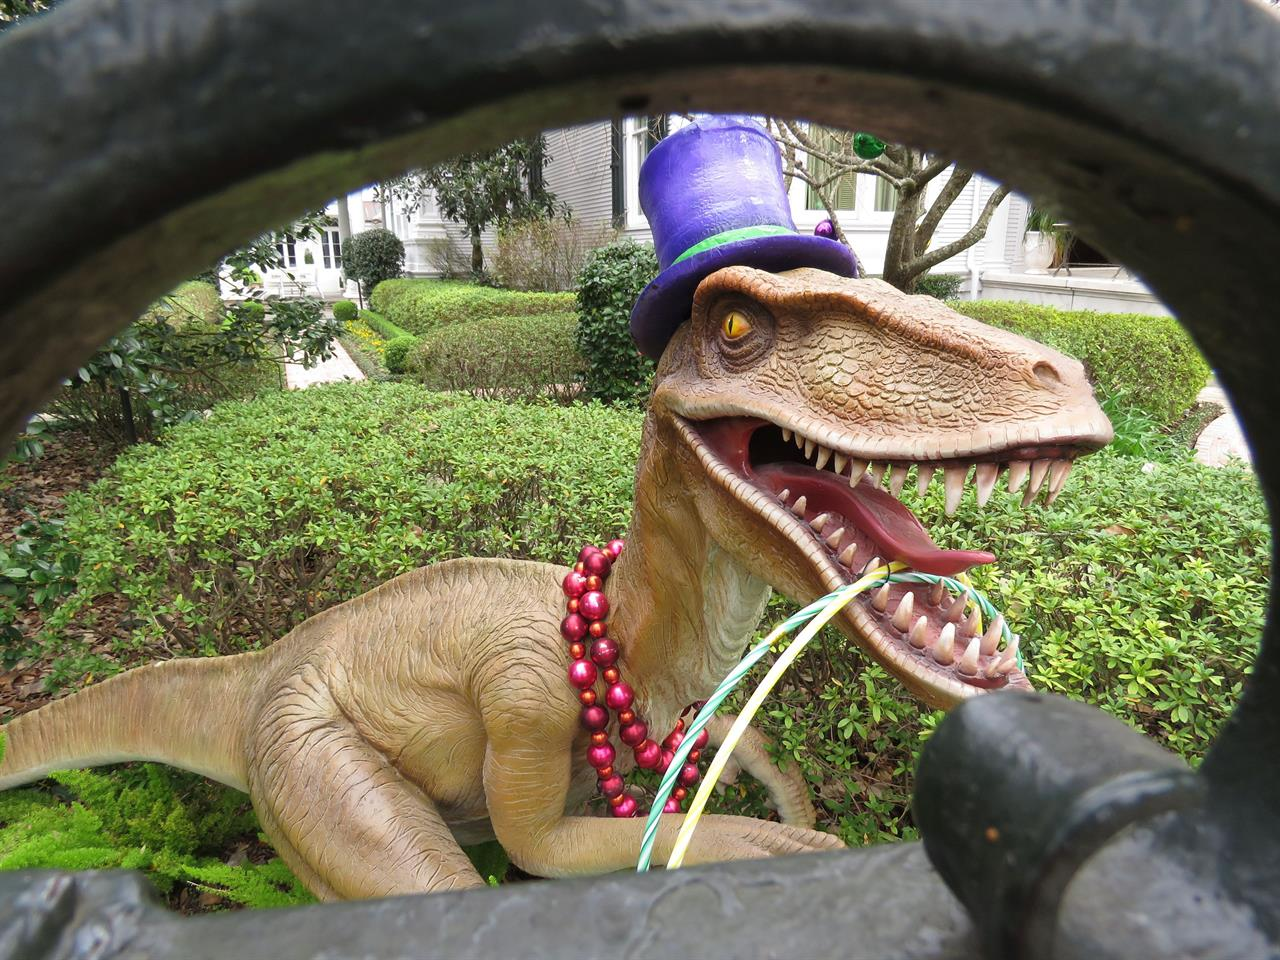 A top-hatted dinosaur, shown Tuesday, Jan. 26, 2021, is among Mardi Gras decorations in the yard of a mansion on St. Charles Avenue in New Orleans. Because pandemic dangers from large and widespread crowds have canceled Mardi Gras parades in New Orleans this year, thousands of people are decorating their homes as floats. (AP Photo/Janet McConnaughey)